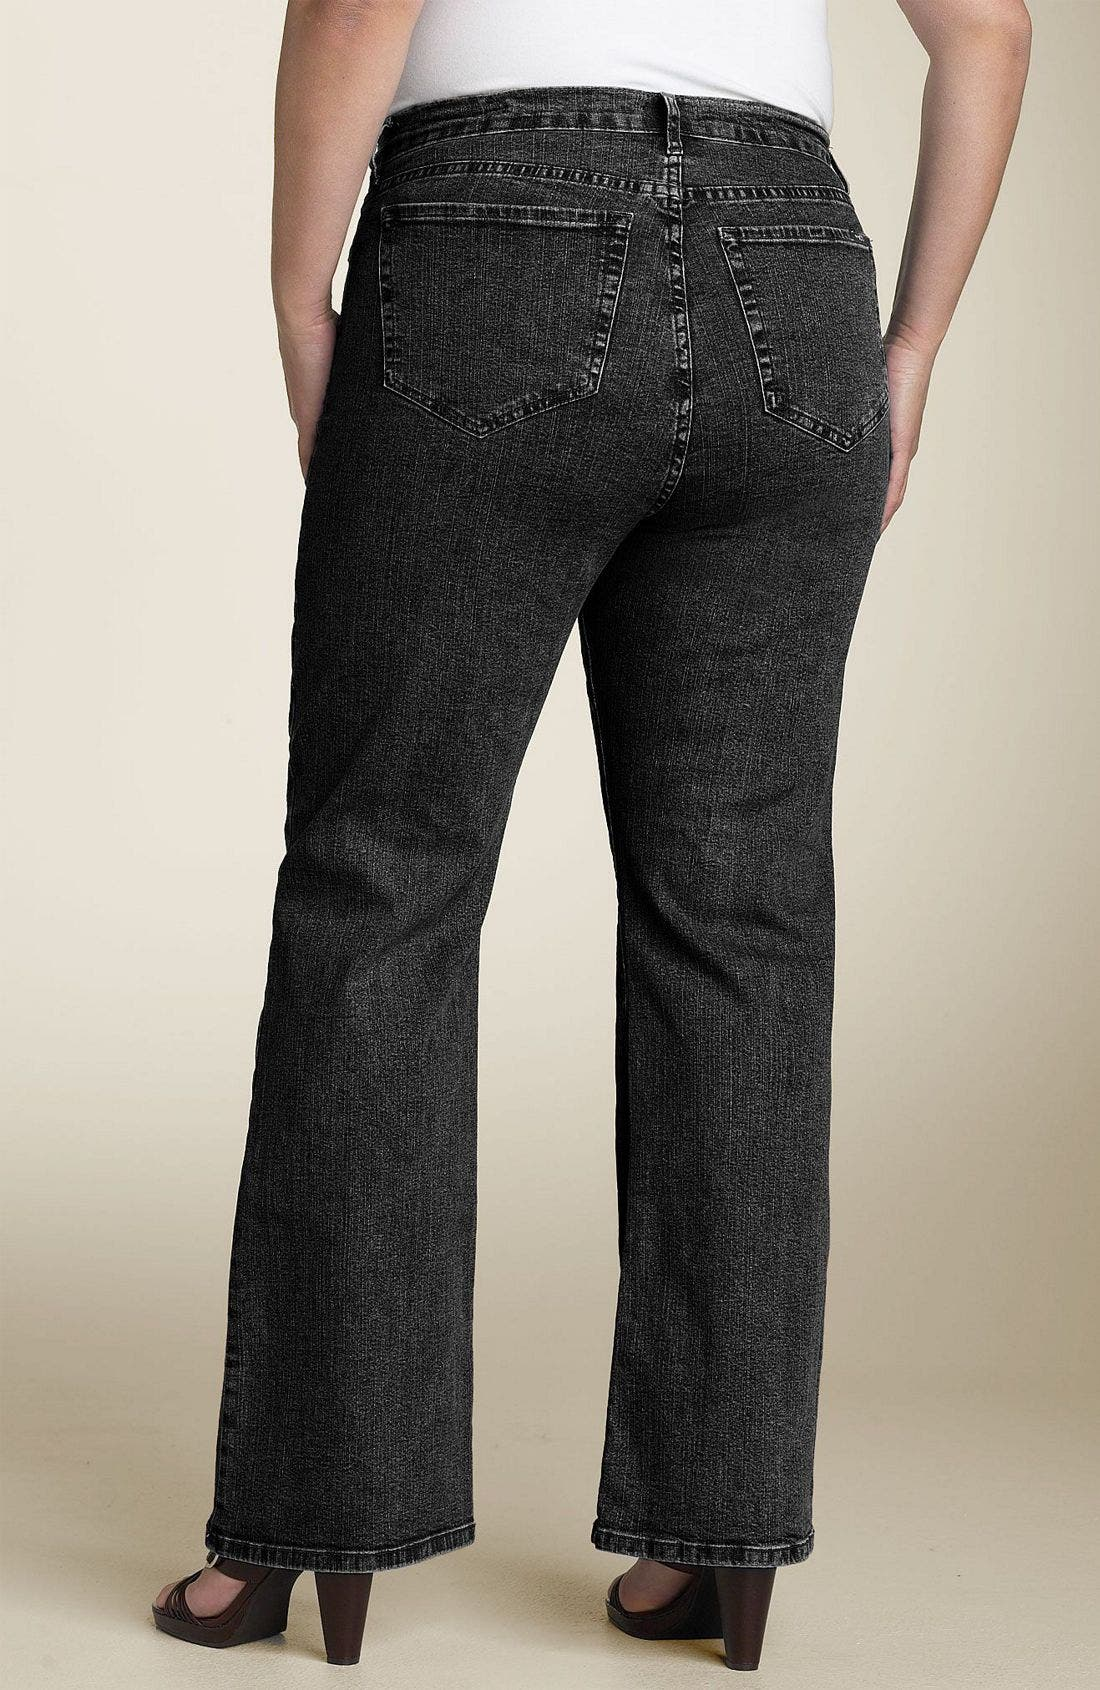 Alternate Image 1 Selected - NYDJ Stretch Jeans (Plus)